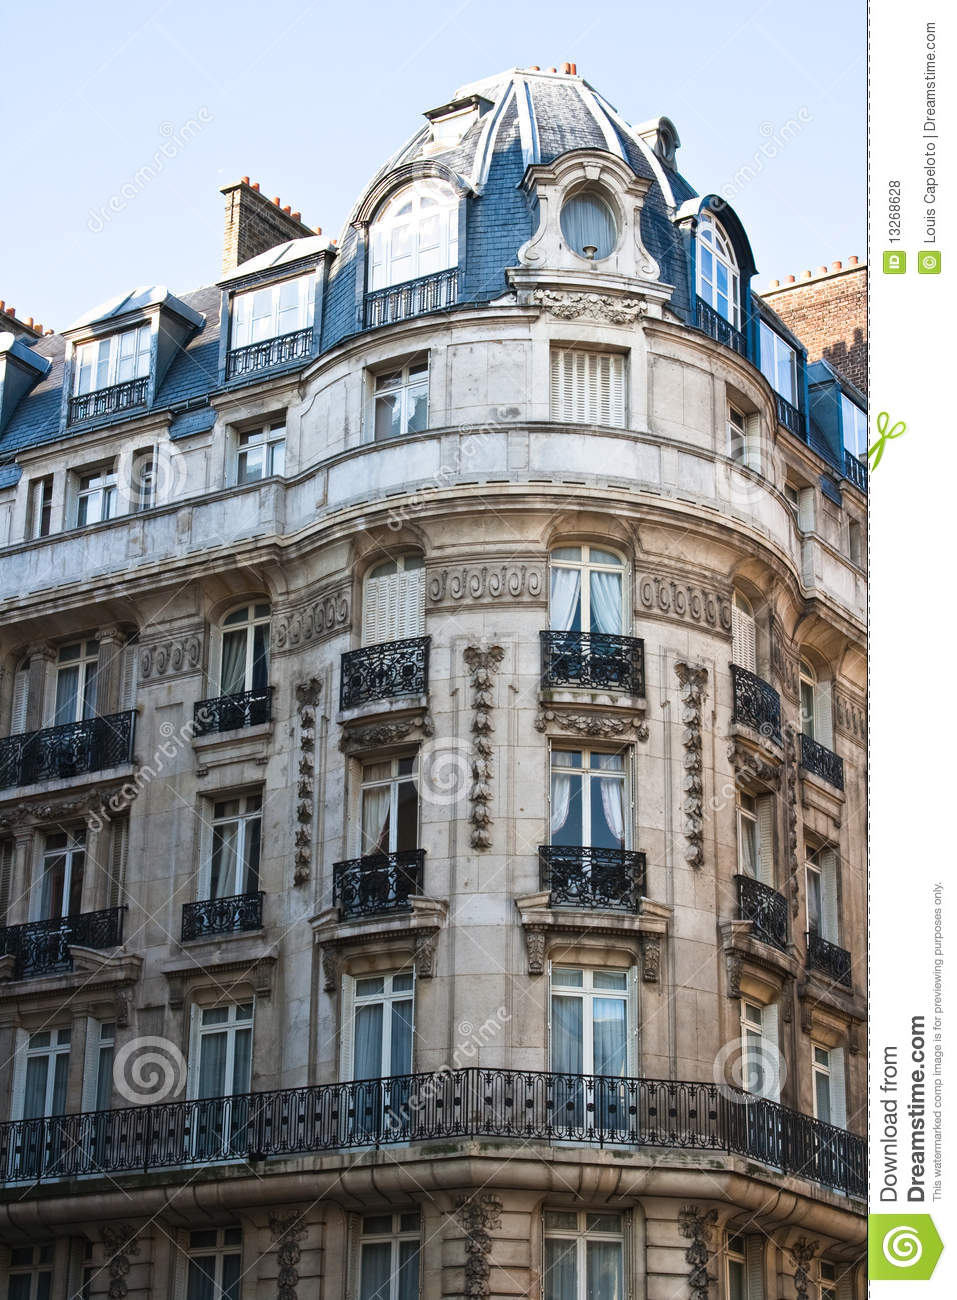 Beautiful architecture in paris france royalty free stock for Beautiful architecture